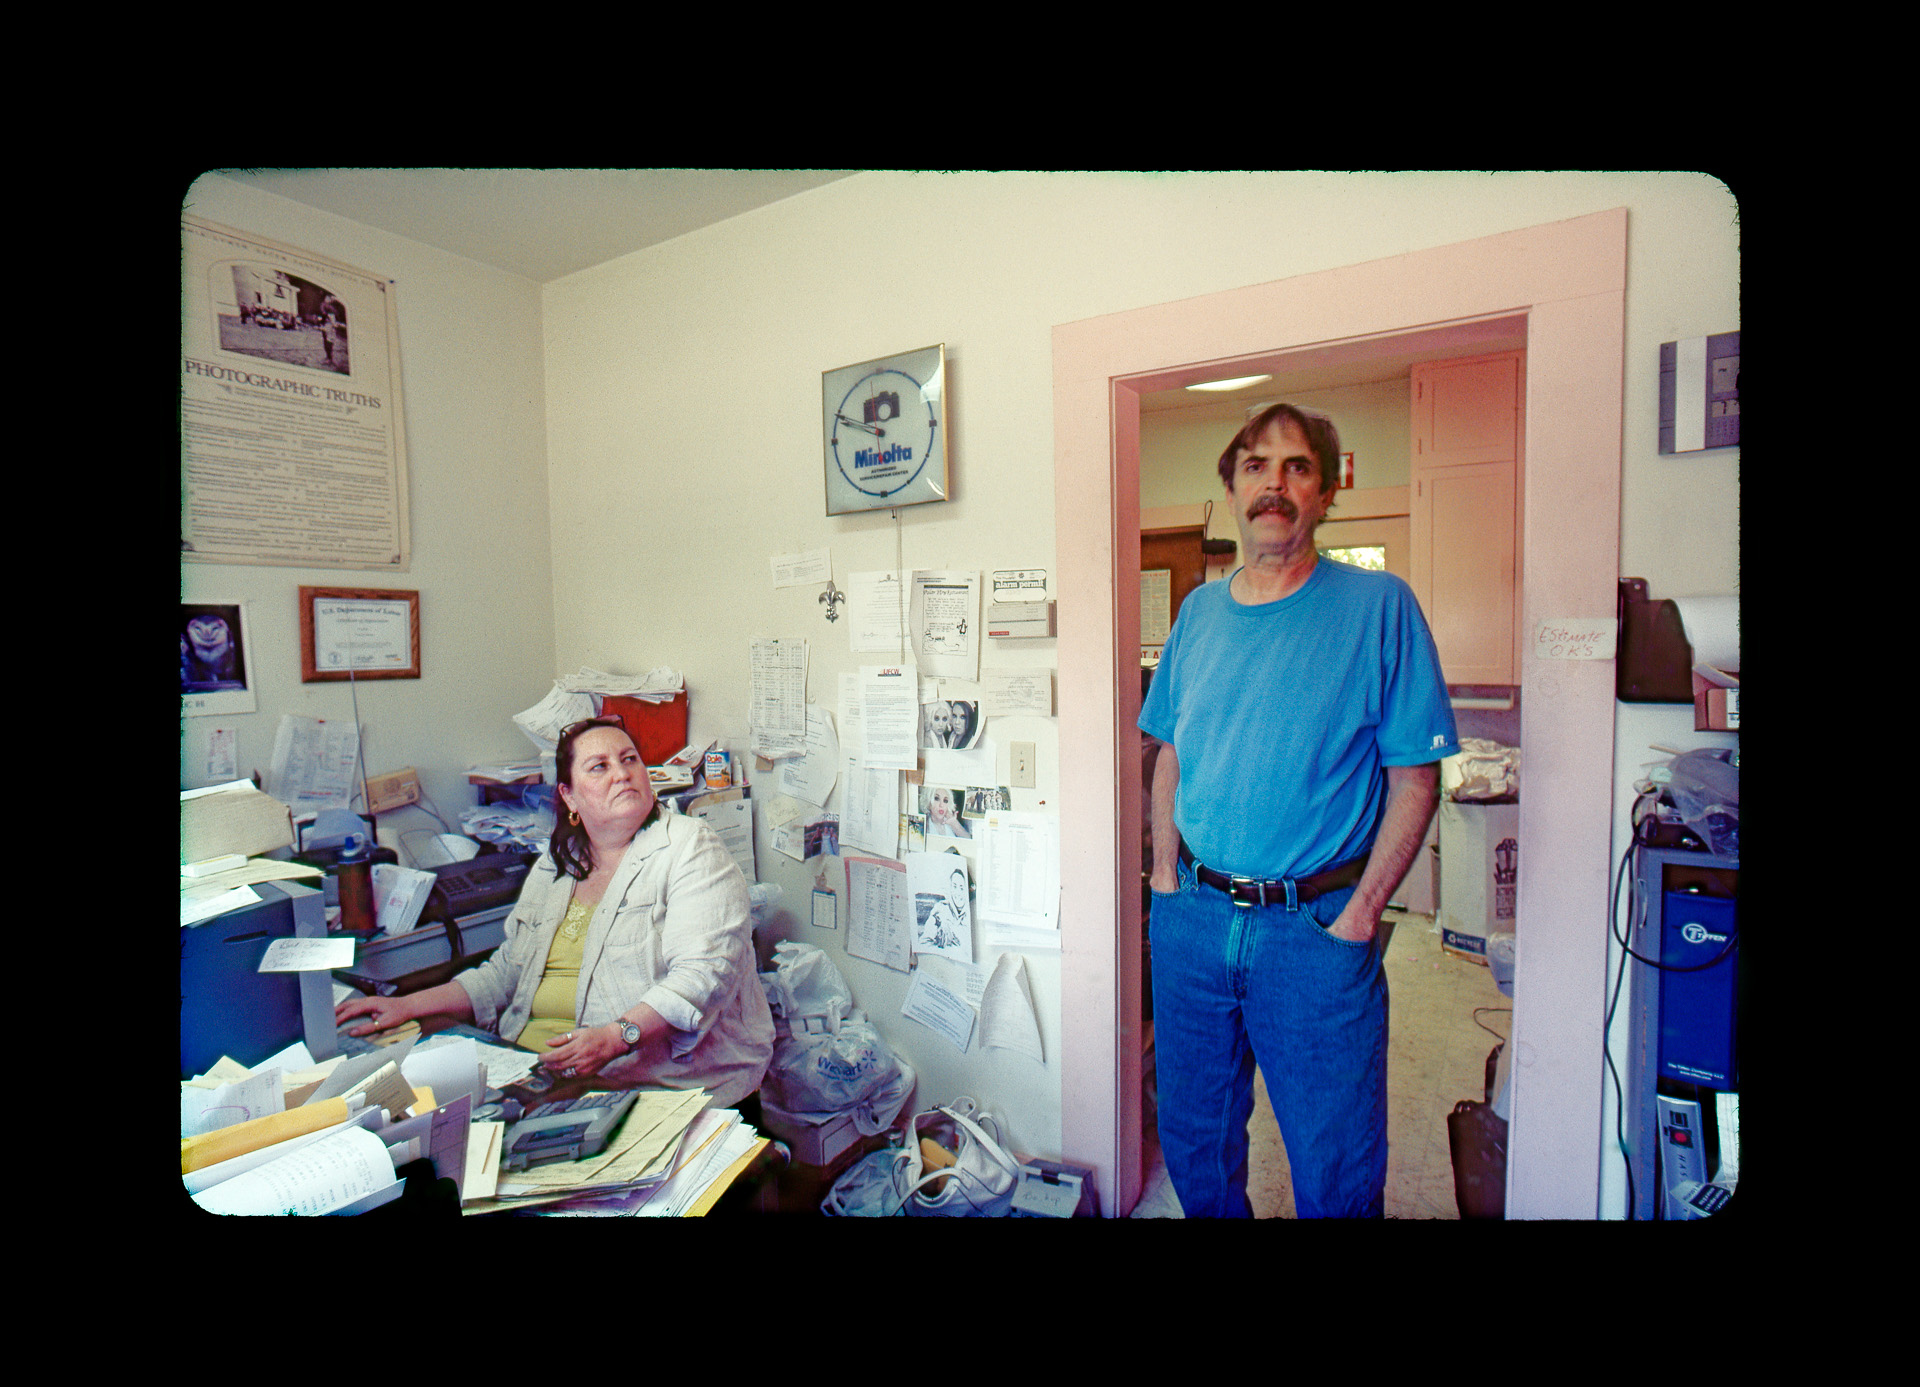 Teresa and Paul owners of Associated Camera Repair. Photo ©2010 Stephen Takacs